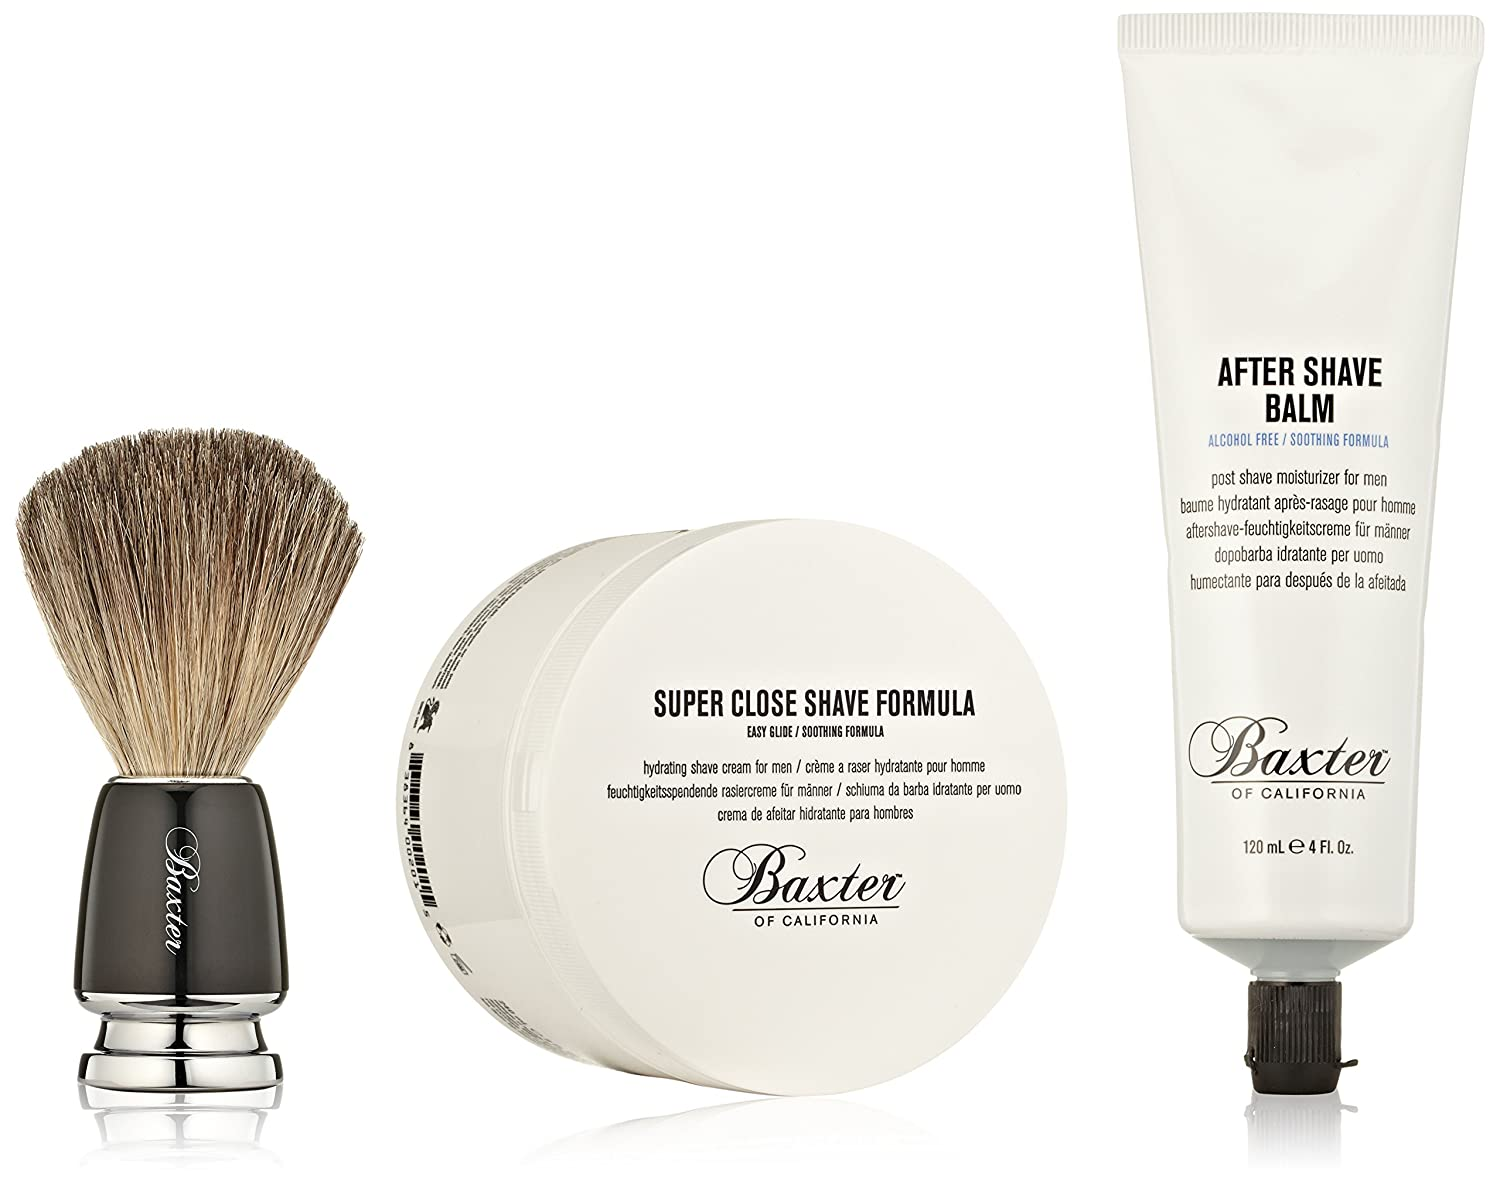 Aftershave & Pre-shave New Mens Baxter Of California Travel Shaving Brush Health & Beauty